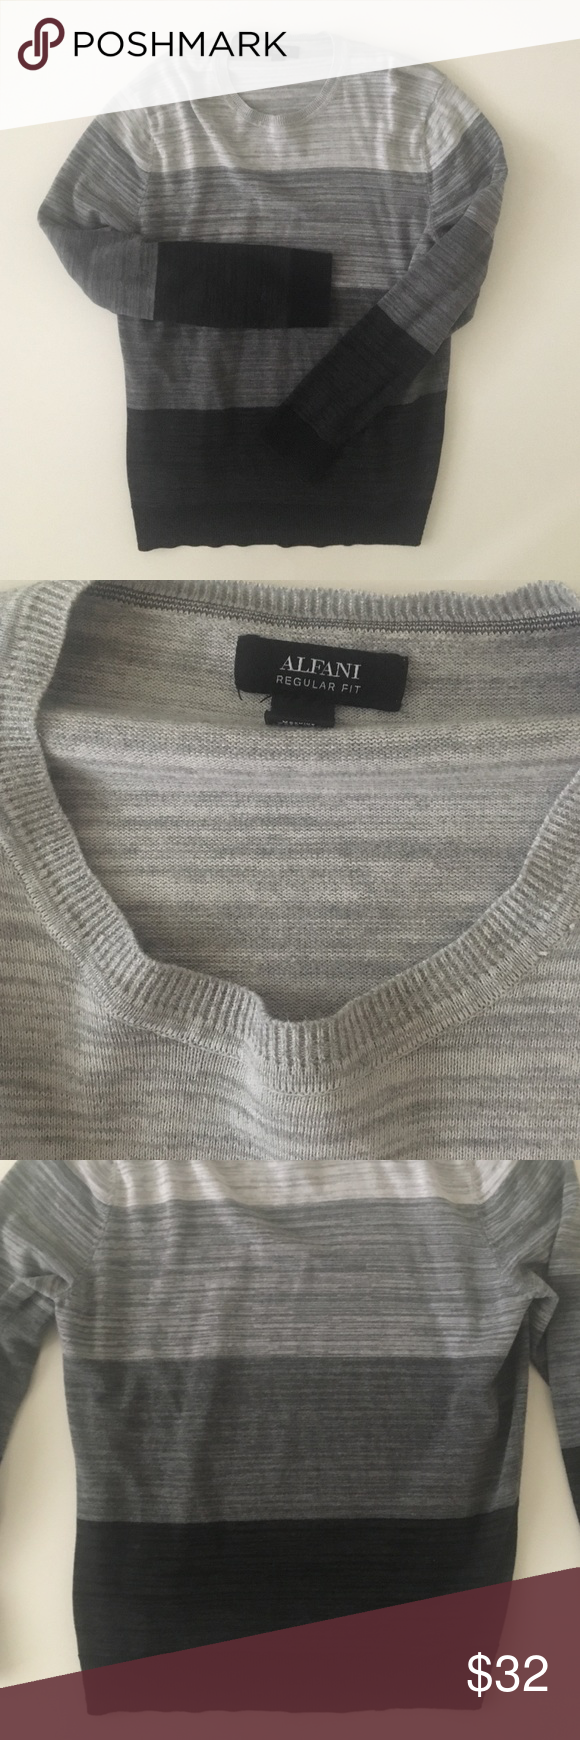 MENS Alfani Regular Fit Sweater Very nice quality sweatshirt. Worn twice. Colors: black, charcoal, grey, and heather grey. Doesn't fit my husband anymore. Alfani Sweaters Crewneck